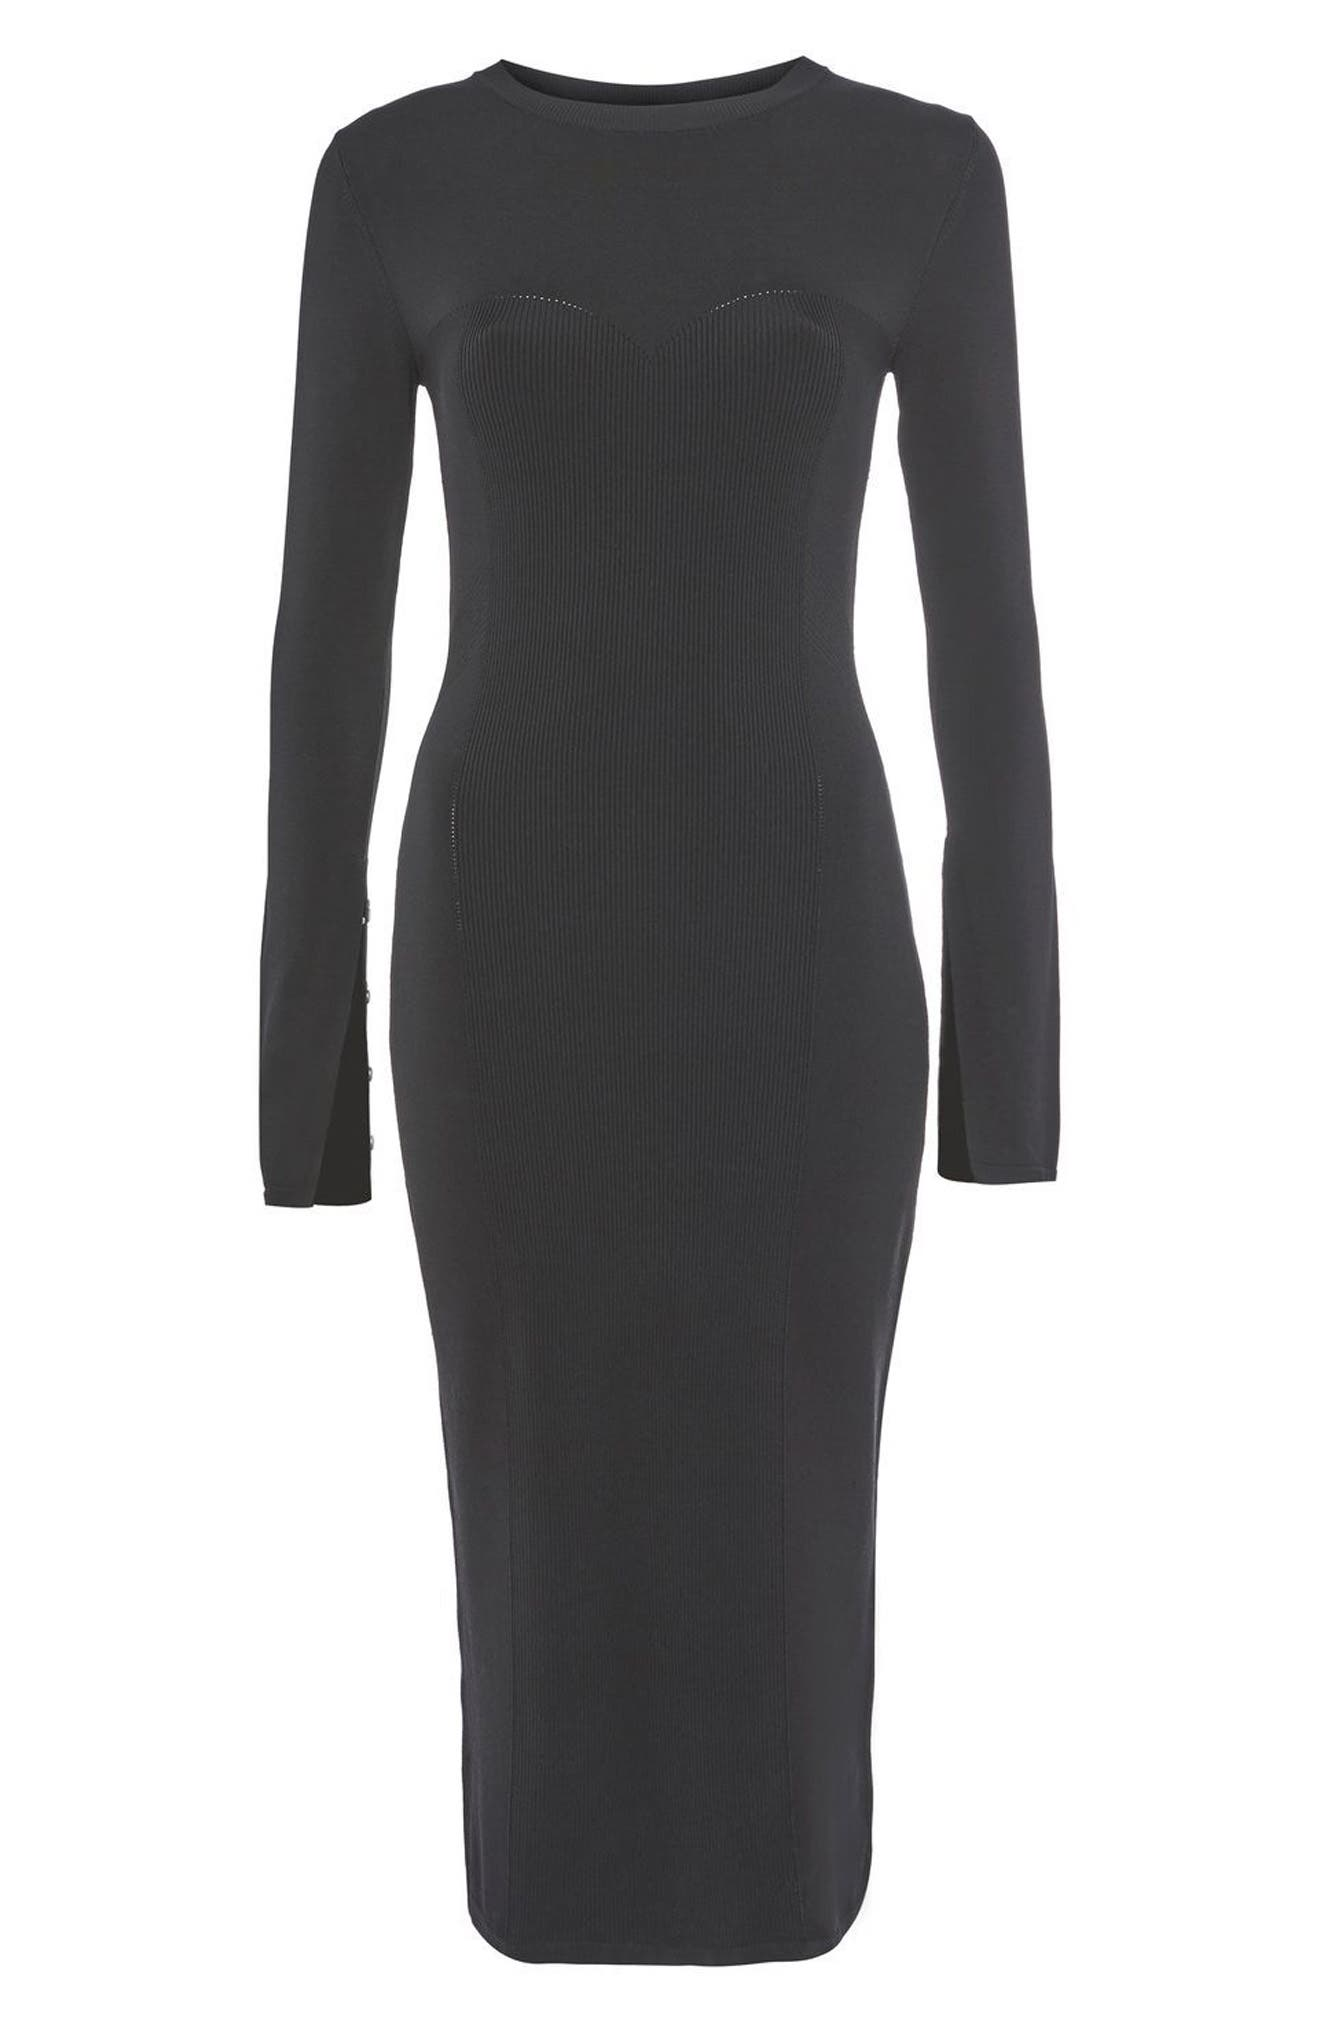 Topshop Pointelle Midi Dress,                         Main,                         color, Black